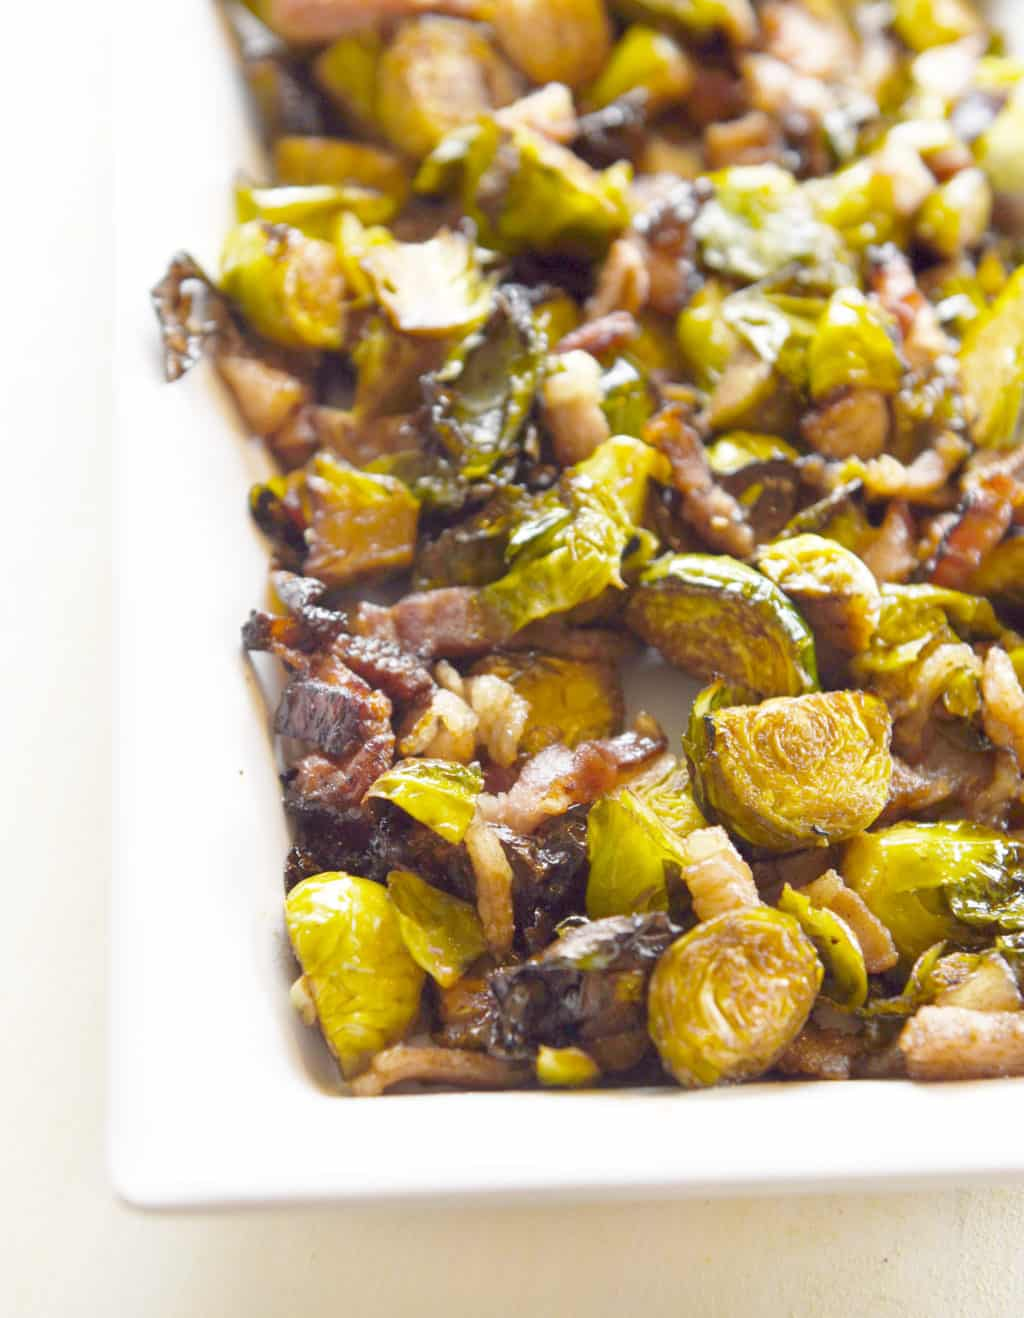 Balsamic and Bacon Roasted Bussels Sprouts! A favorite side dish loved by all who try it. Sweet, salty and wonderful!